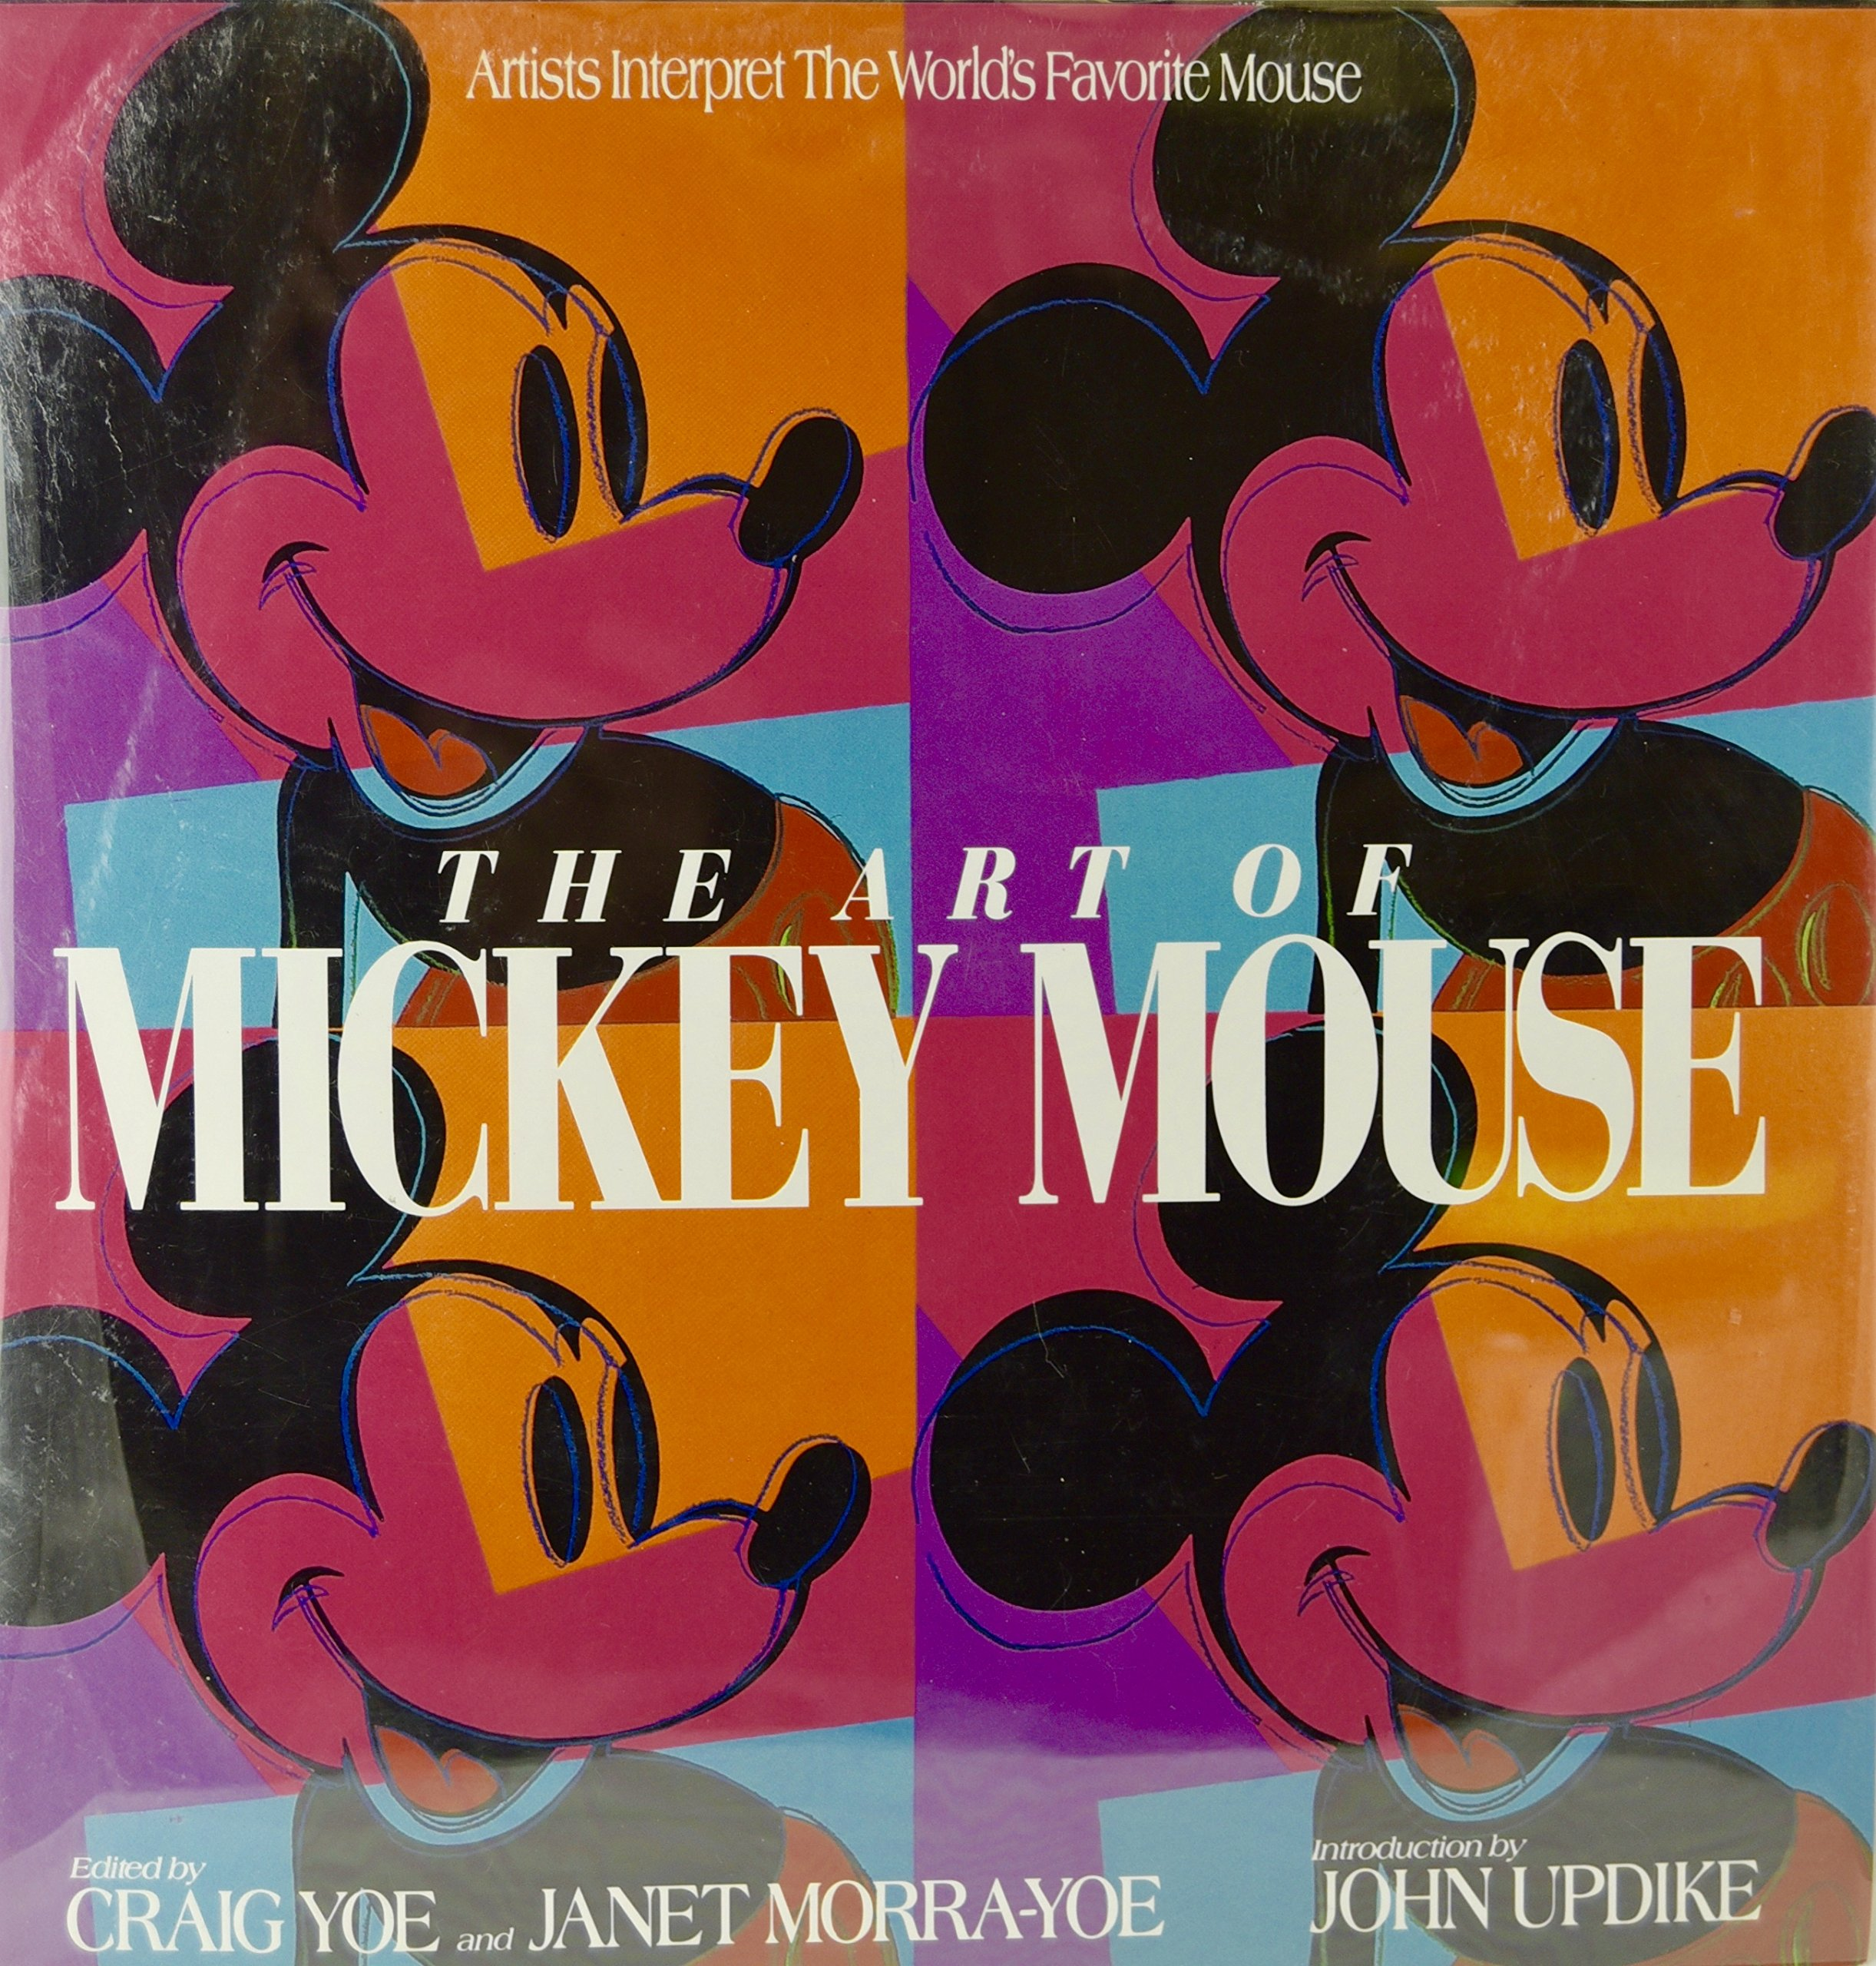 The Art of Mickey Mouse: Artists Interpret The World's Favorite Mouse, Yoe, Craig; Yoe-Morra, Janet